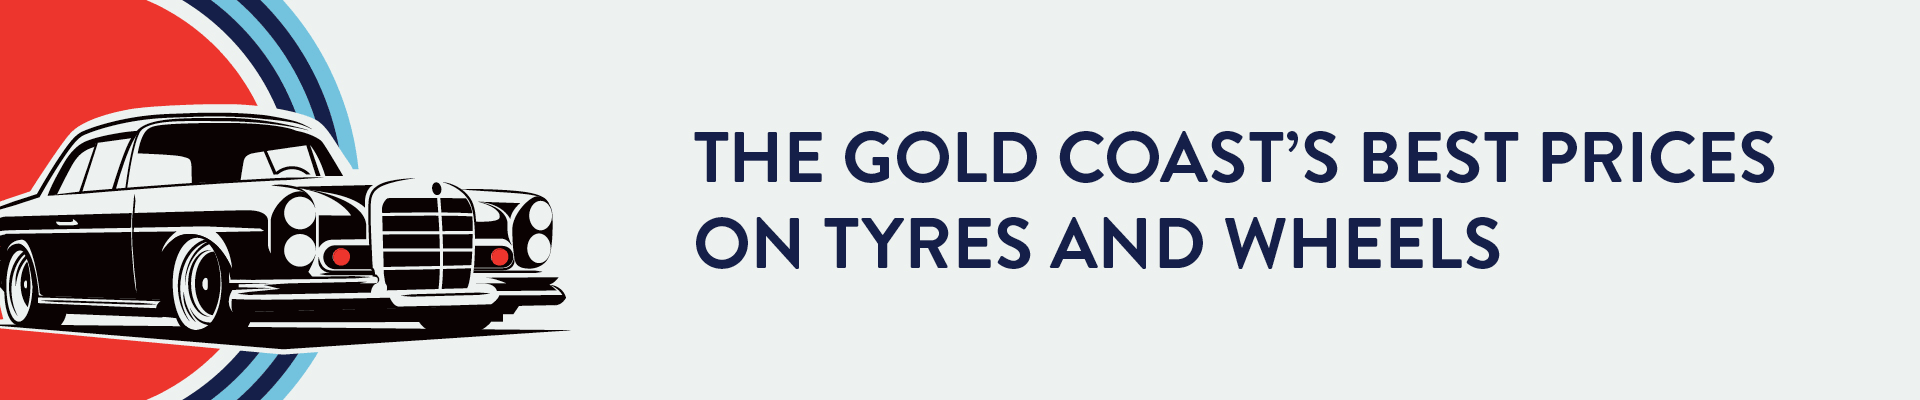 Best Tyre Prices on the Gold Coast